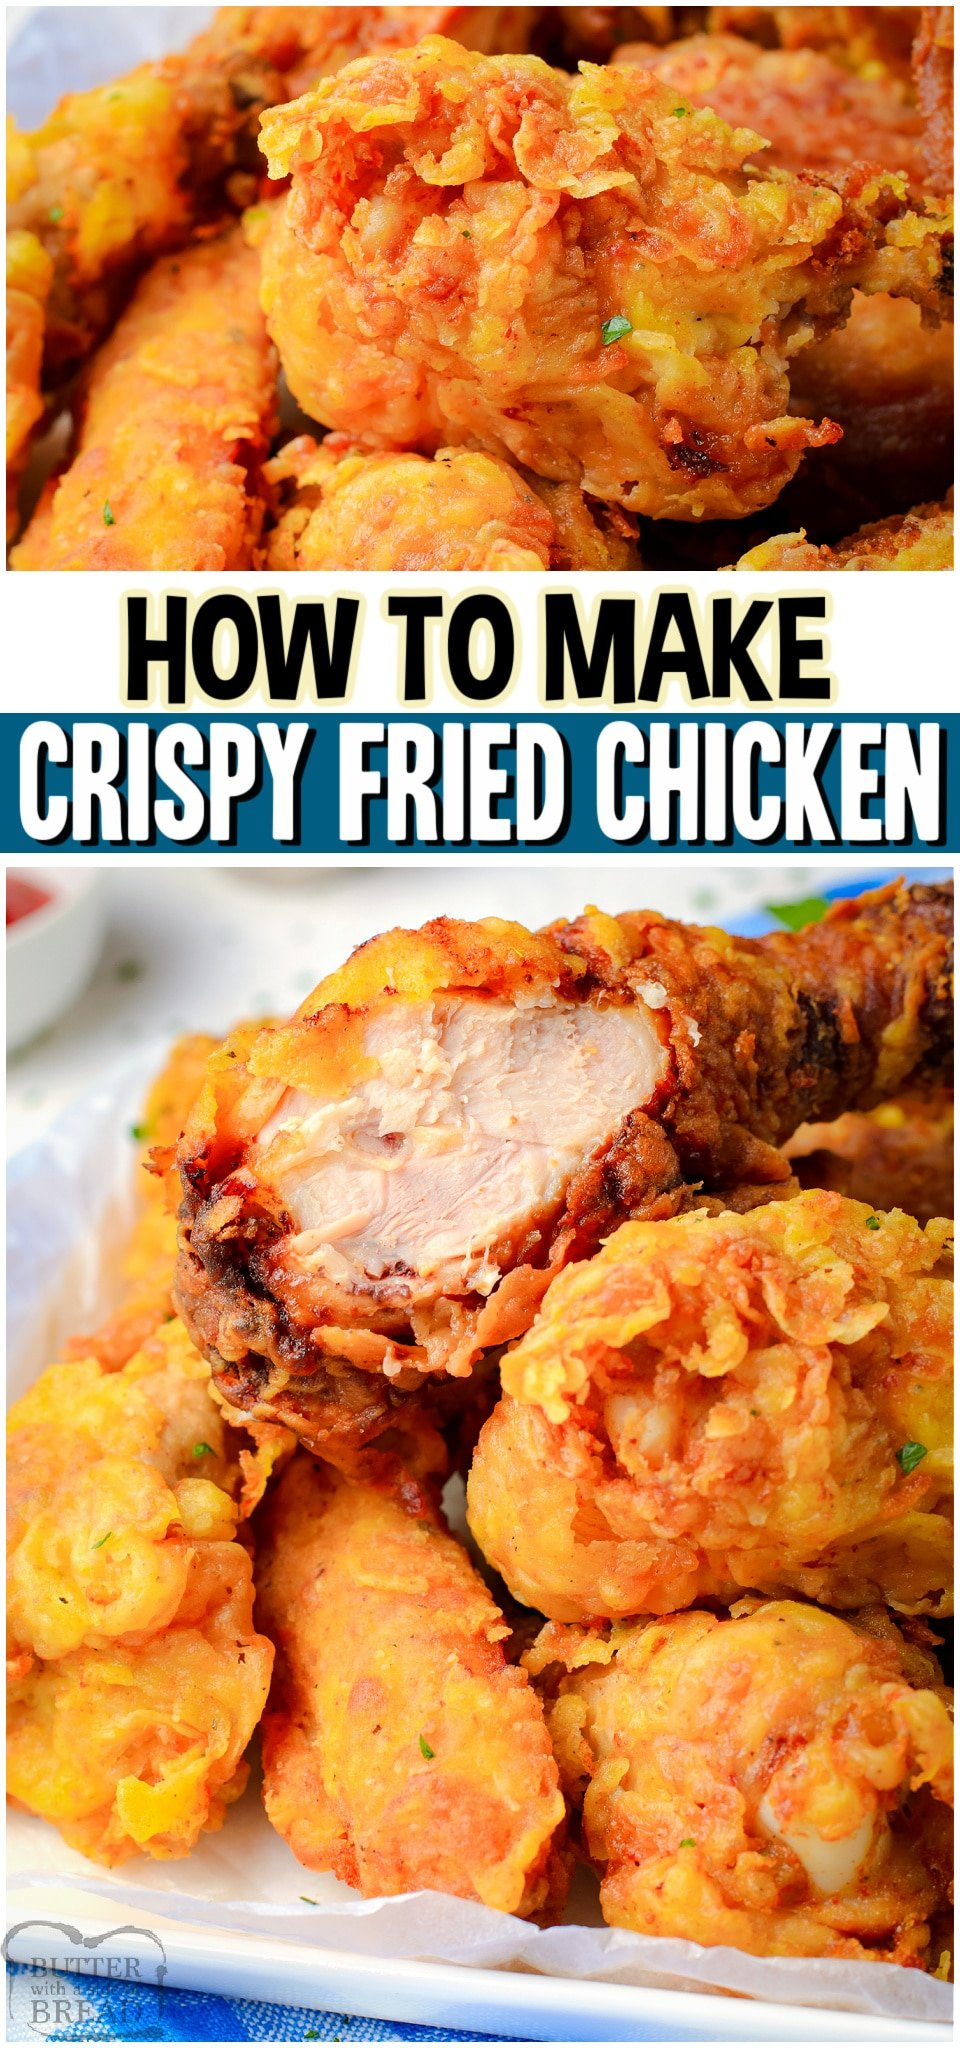 Fried Chicken Recipe made without buttermilk! Our Crispy Fried Chicken has a quick marinade & a double coat of batter for an extra crispy texture! #chicken #fried #crispychicken #homemade #dinner #easyrecipe from BUTTER WITH A SIDE OF BREAD